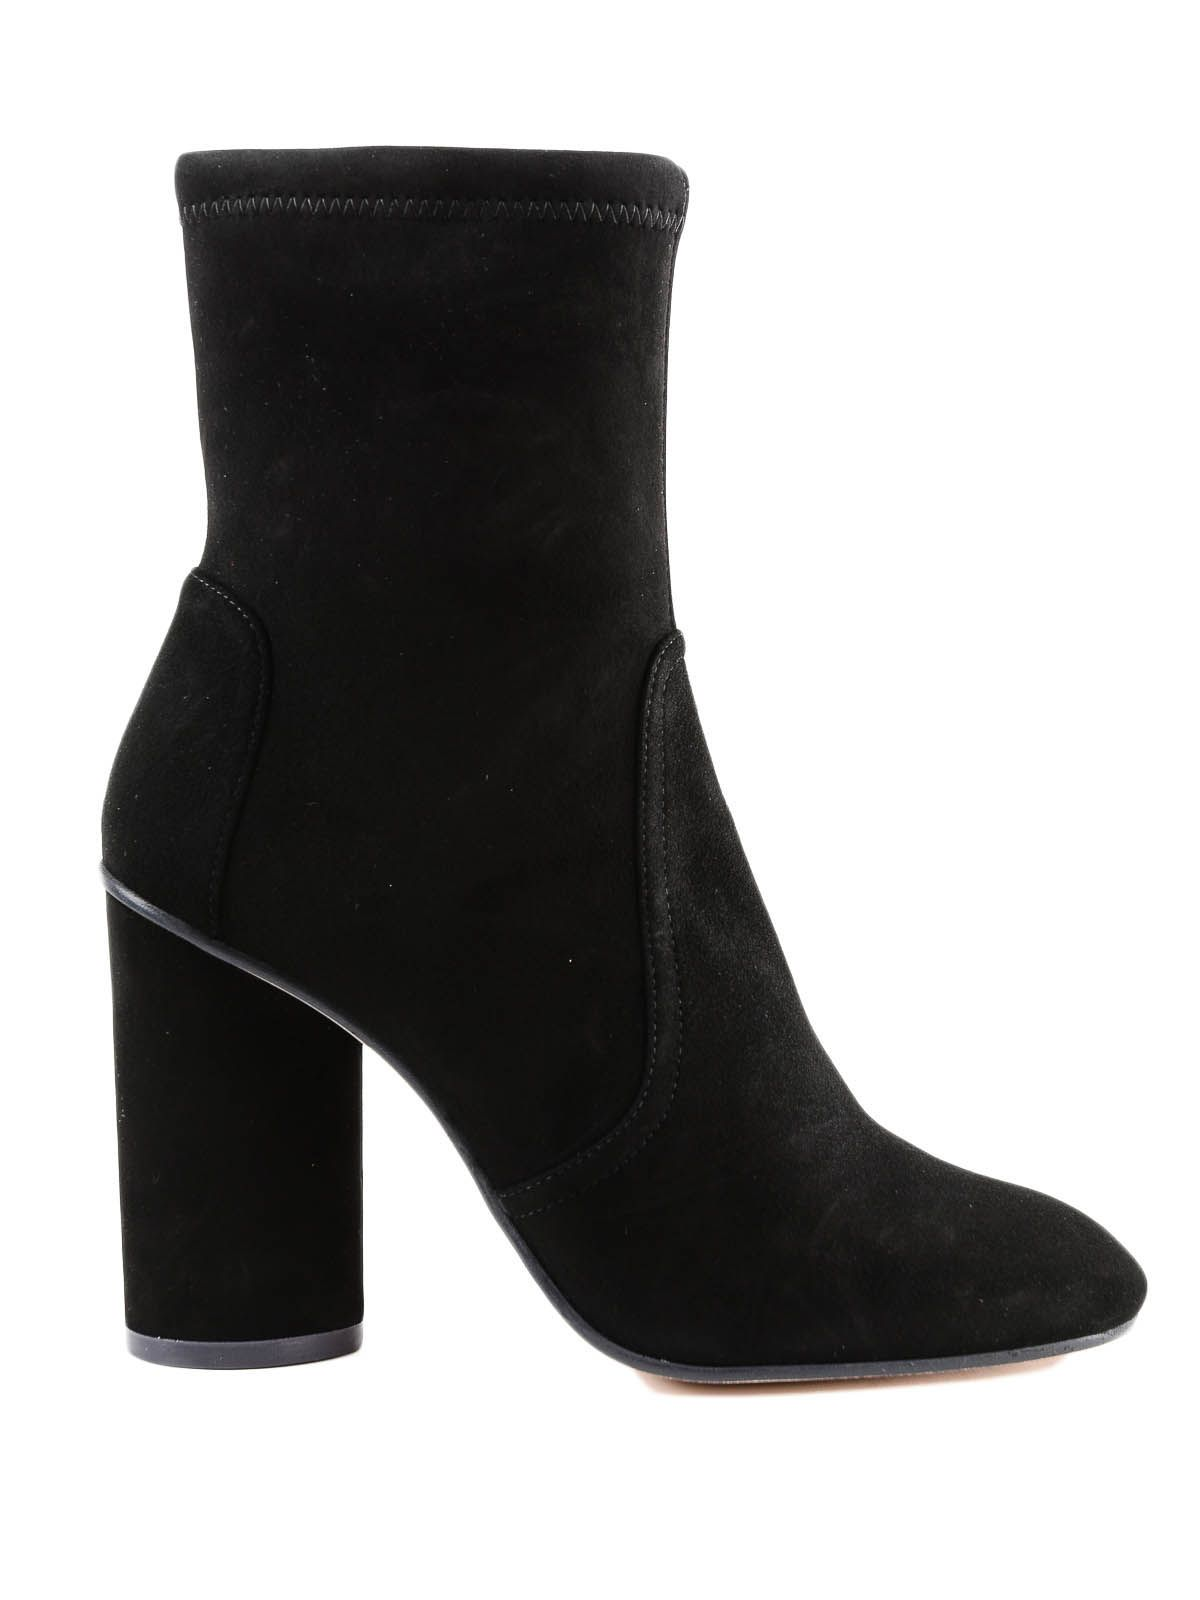 browse for sale Stuart Weitzman Margot boots clearance fashion Style low price cheap online xXrhO2zmq